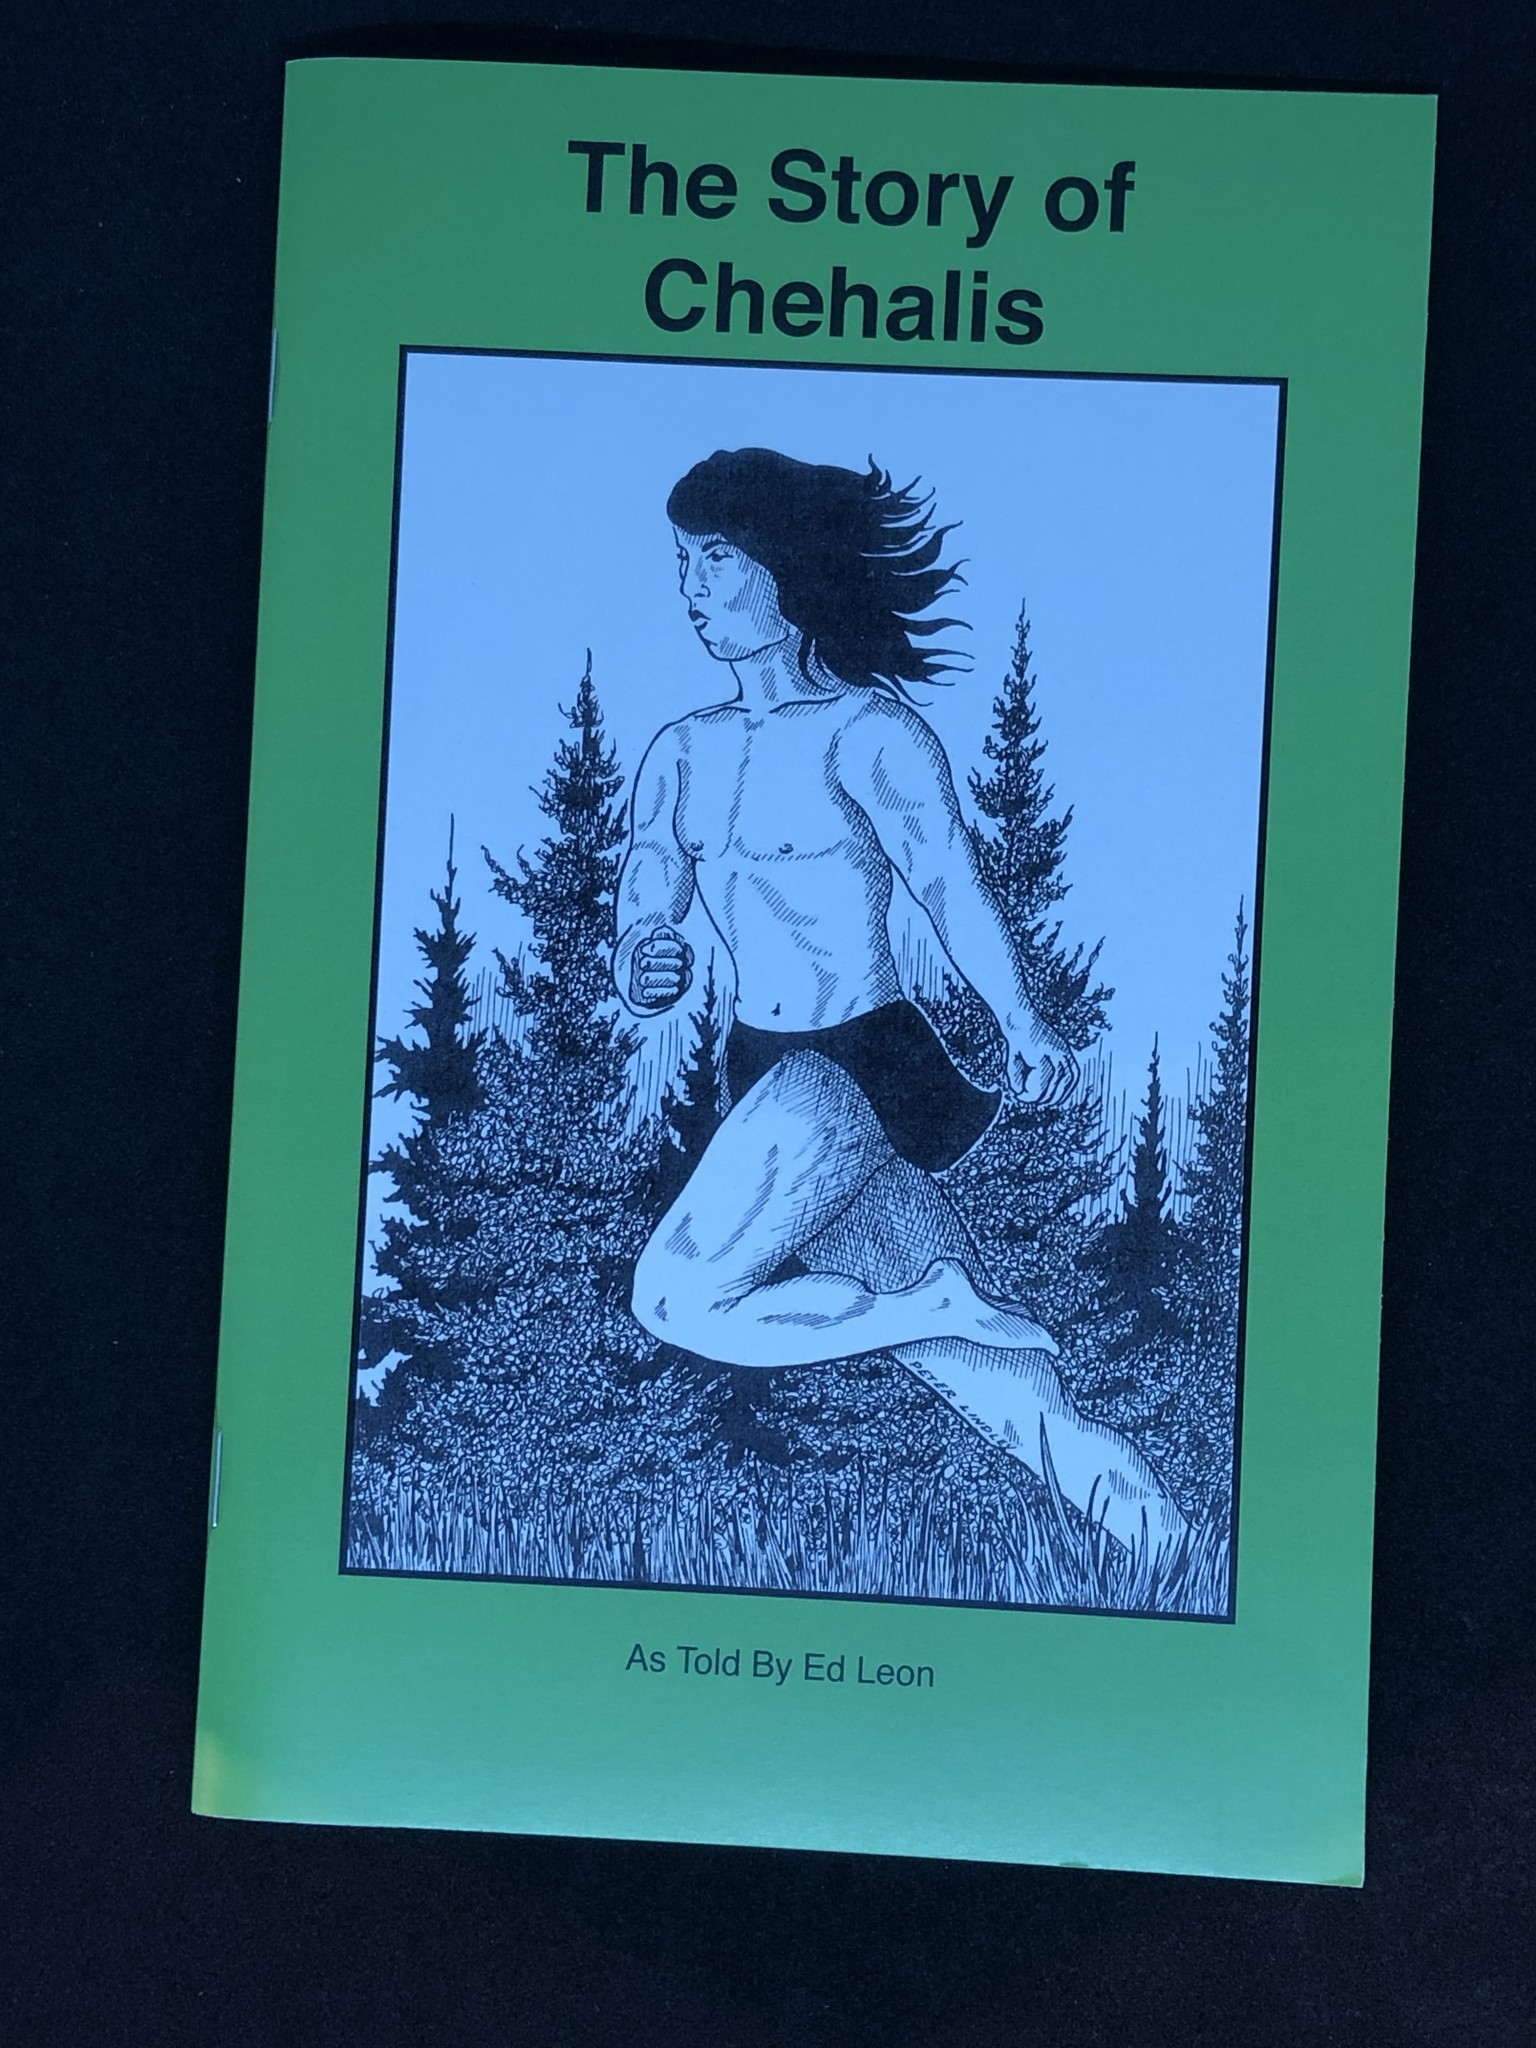 Book-The story of Chehalis-2